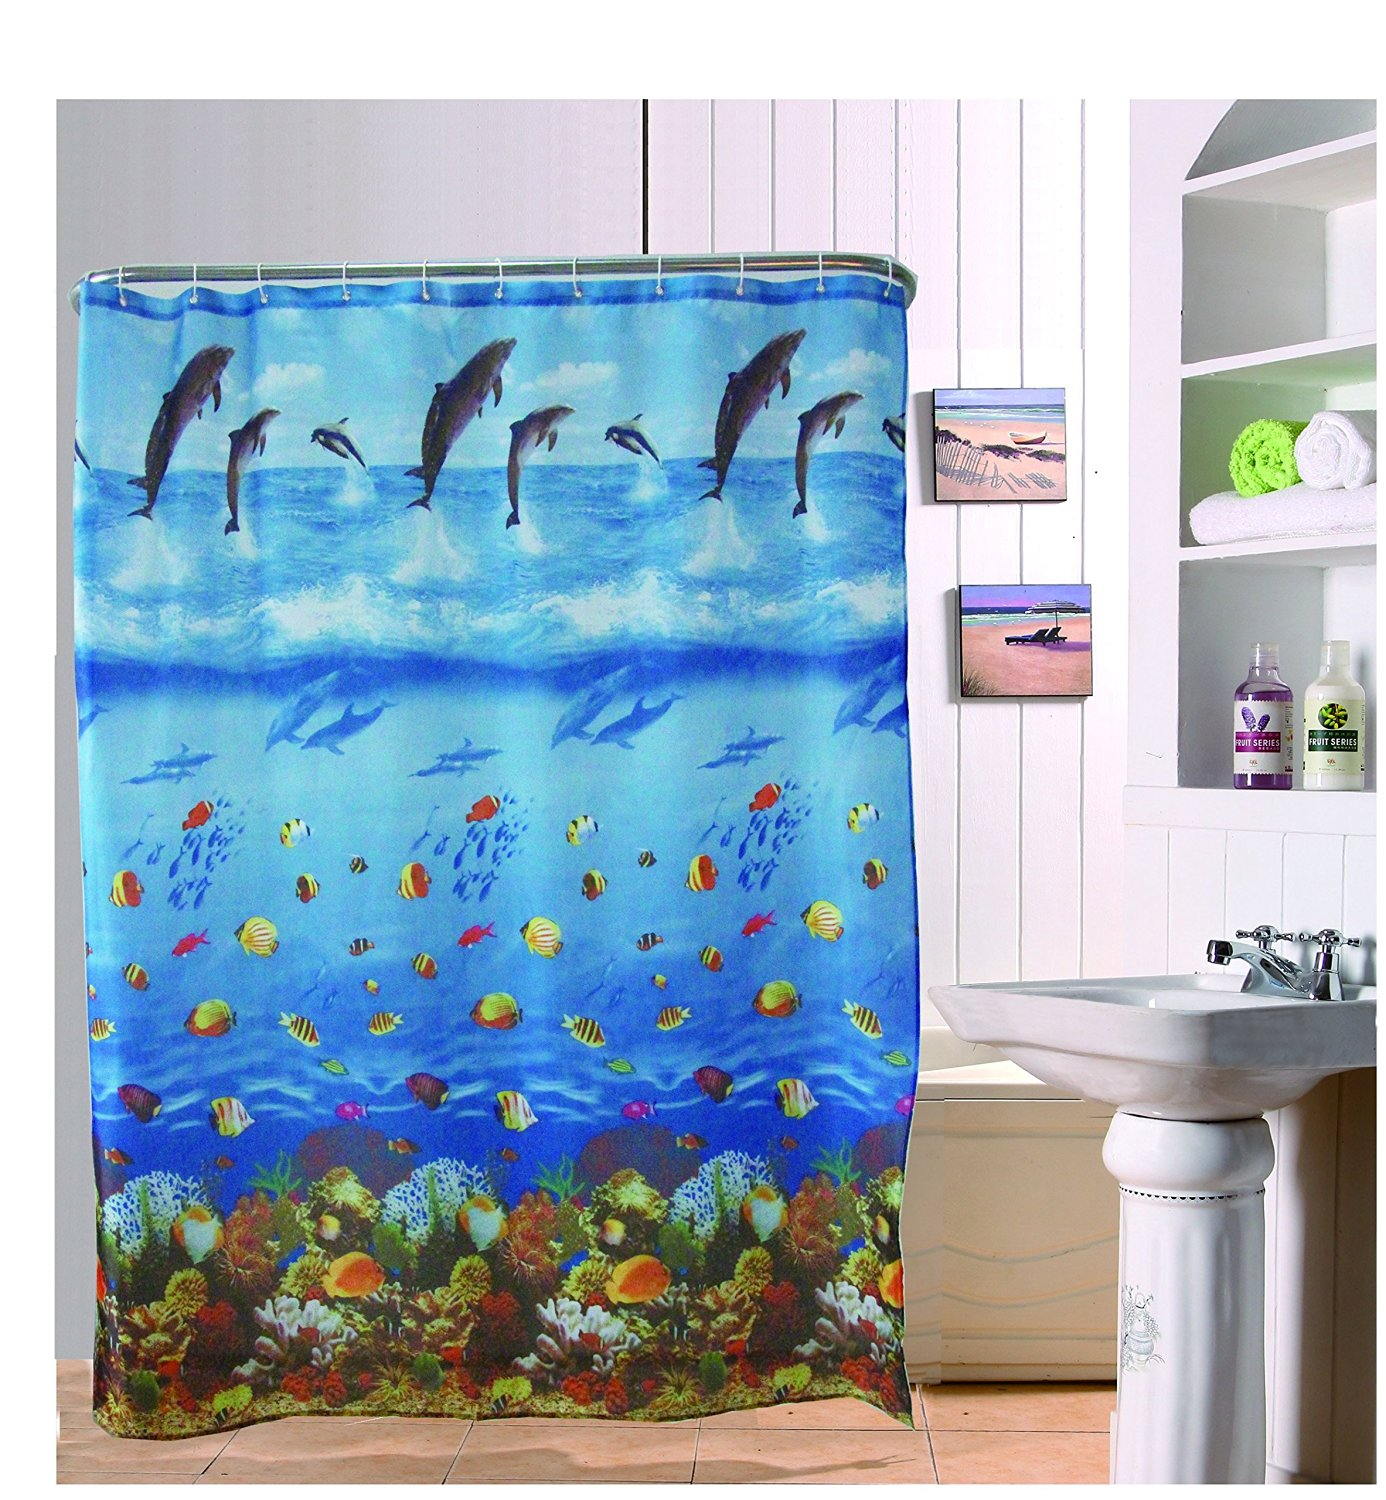 Get Quotations Orange Painting Sketch Style Streets Bathroom Curtain Shower Liner Water Repellent Polyester Fabric